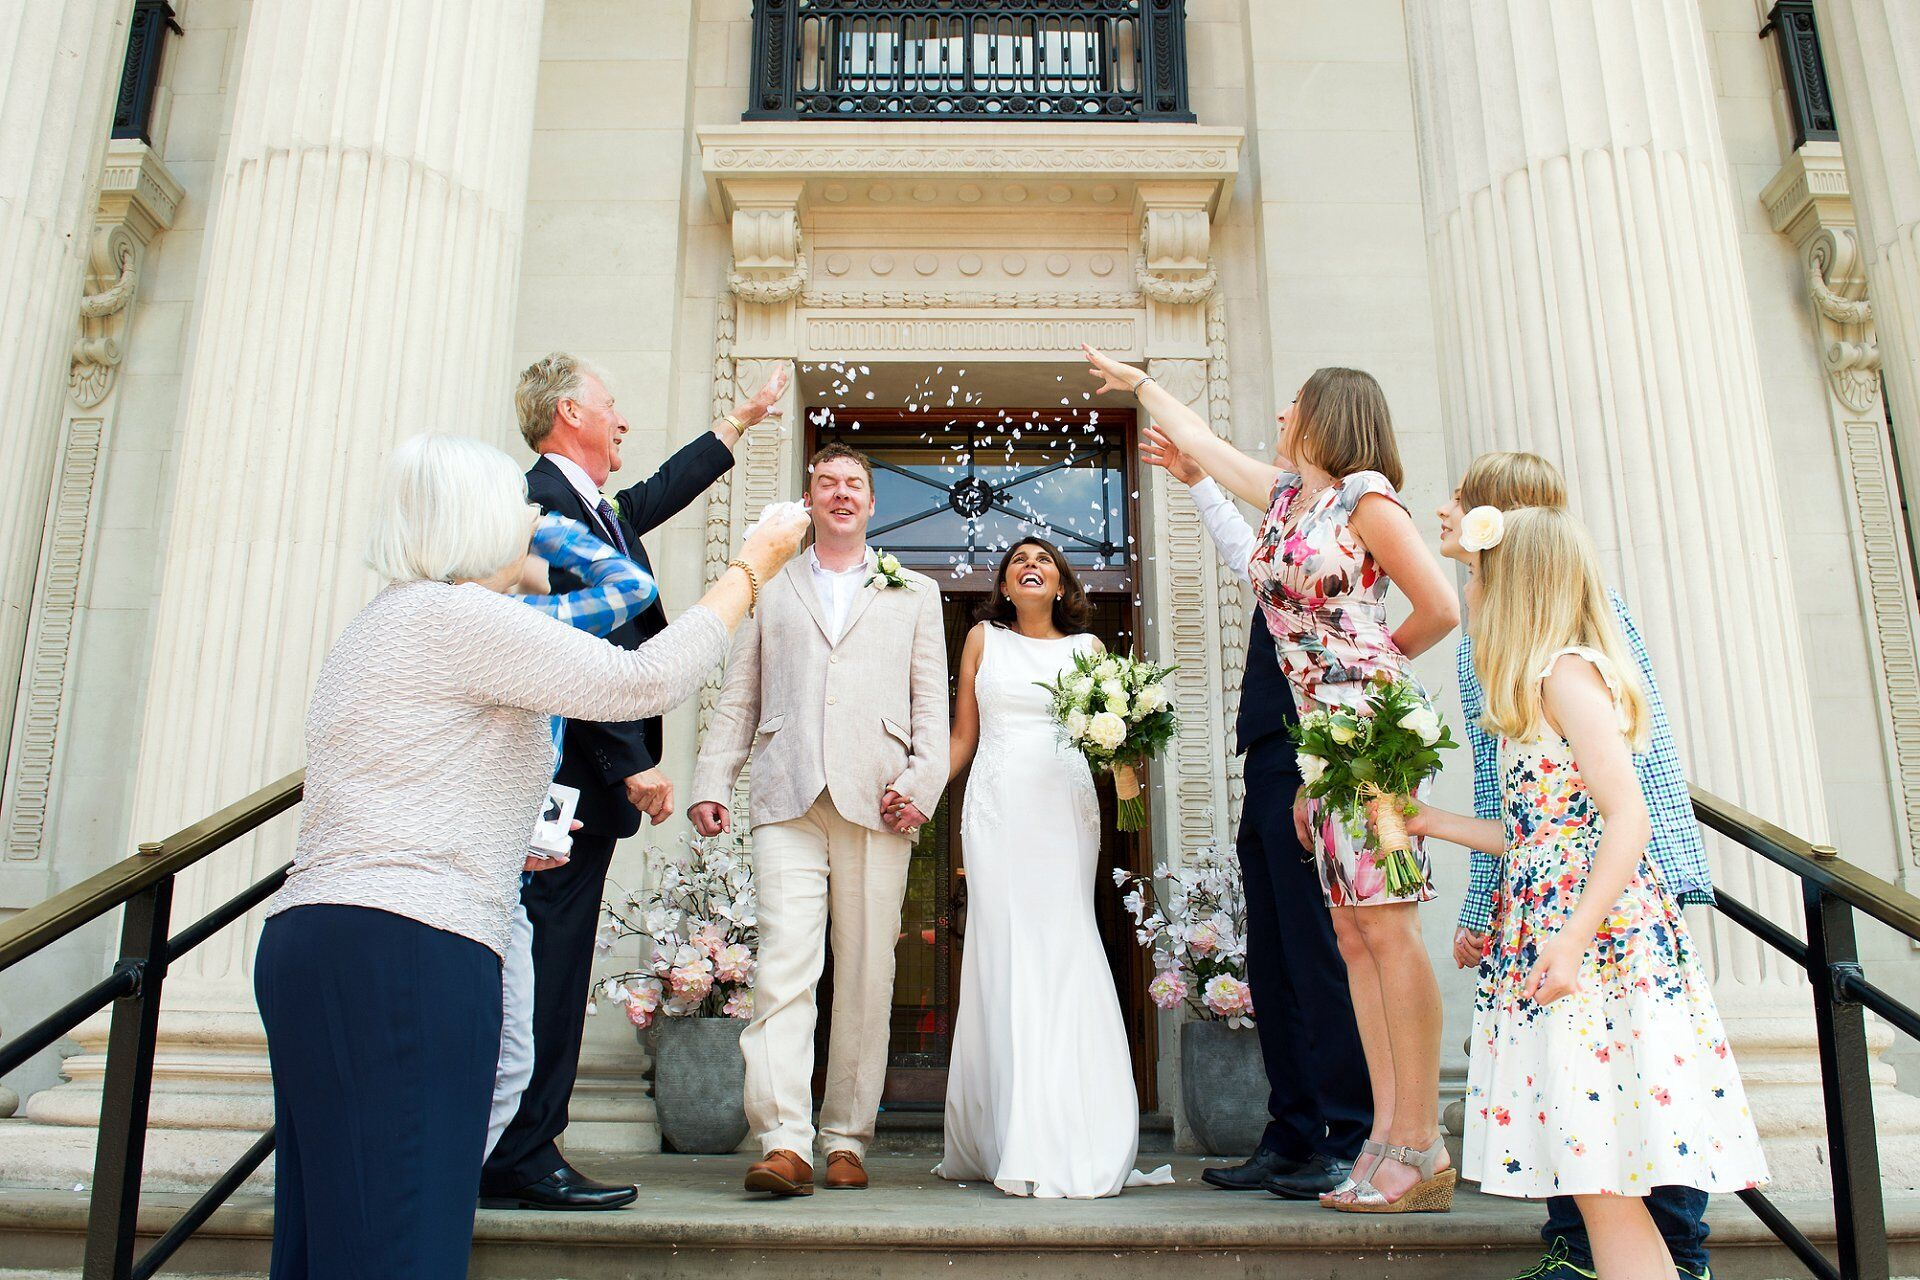 confetti on the iconic old marylebone town hall steps by recommended supplier emma duggan (an old marylebone town hall wedding photographer specialist, especially soho room wedding photography))